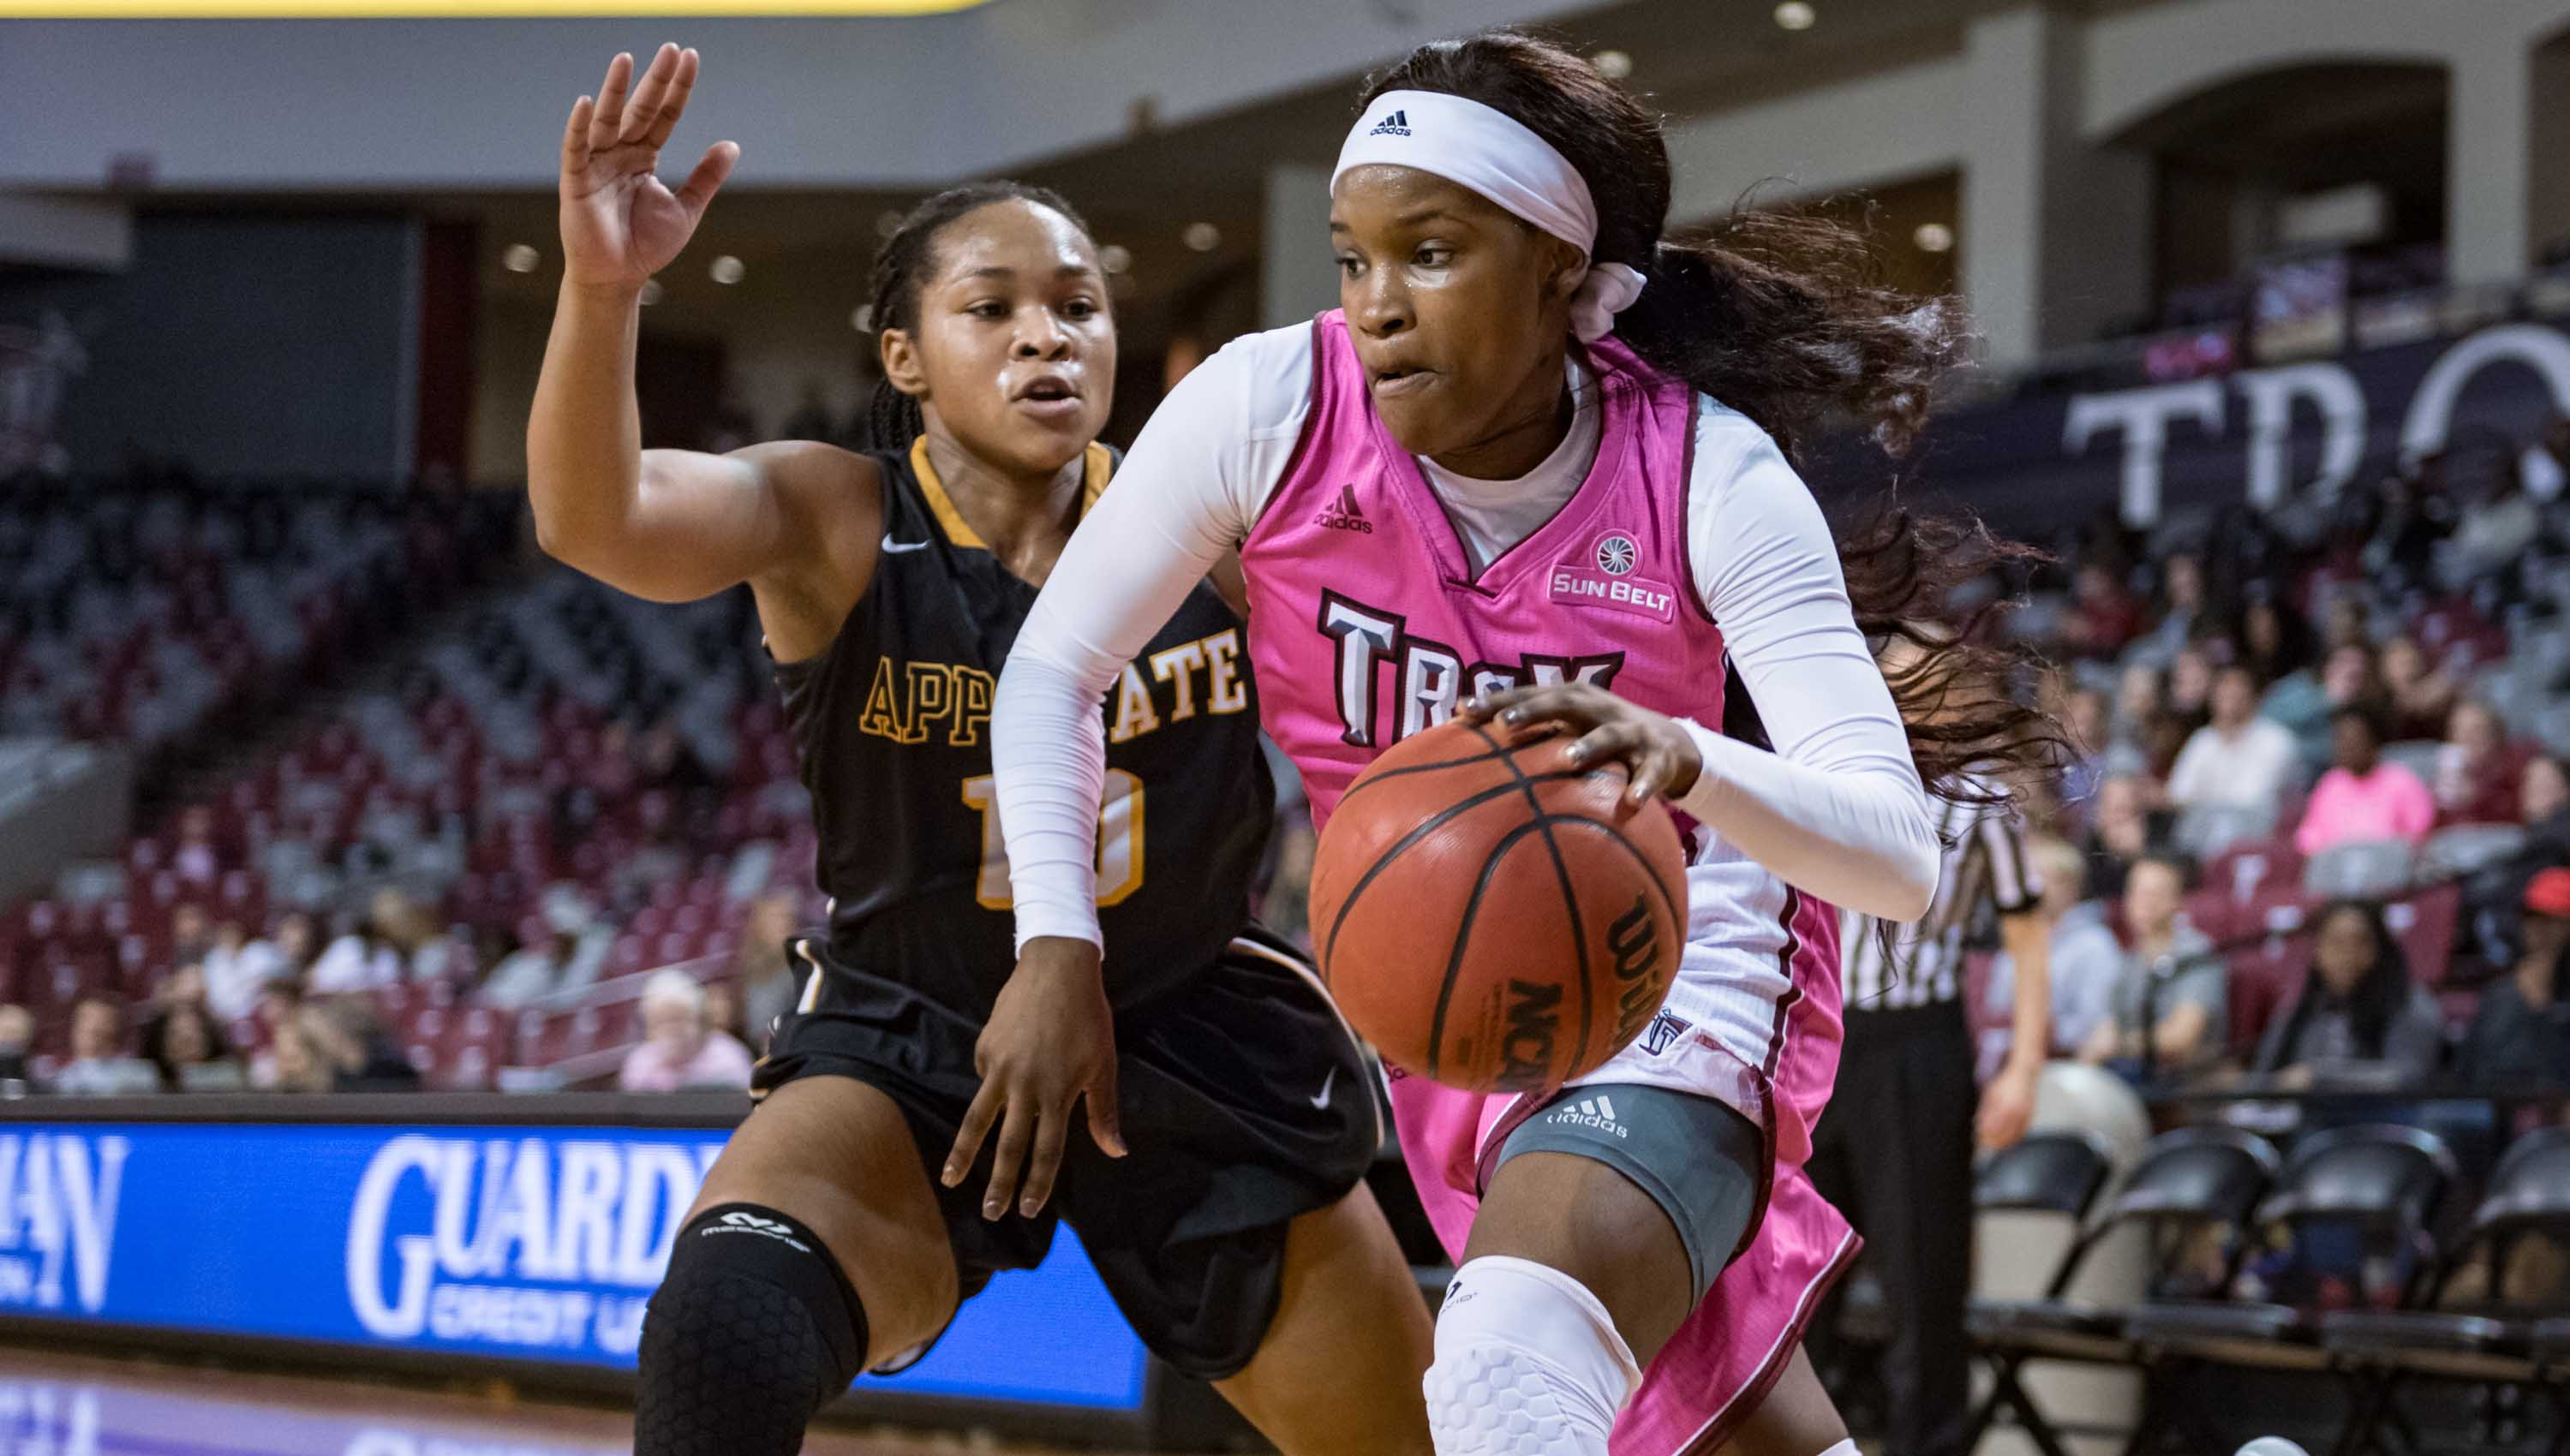 submitted Photo/chris davis Jayla Chills scored a career high 27 points in Troy's 86-77 win over the Appalachian State Mountaineers on Thursday night.